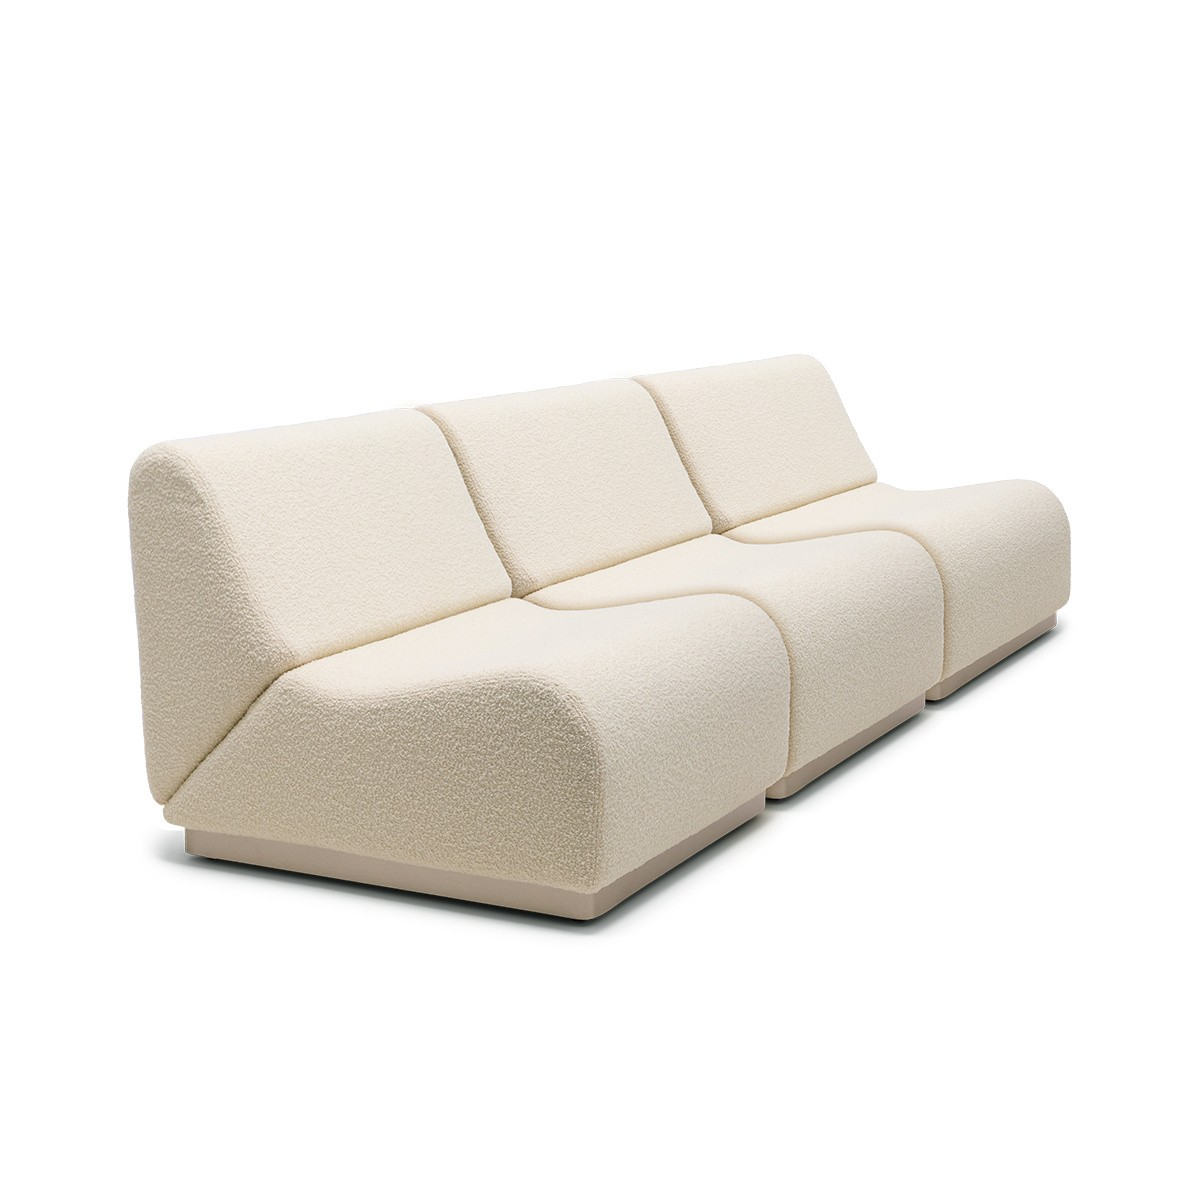 Rotondo modular sofa in cream white curly wool